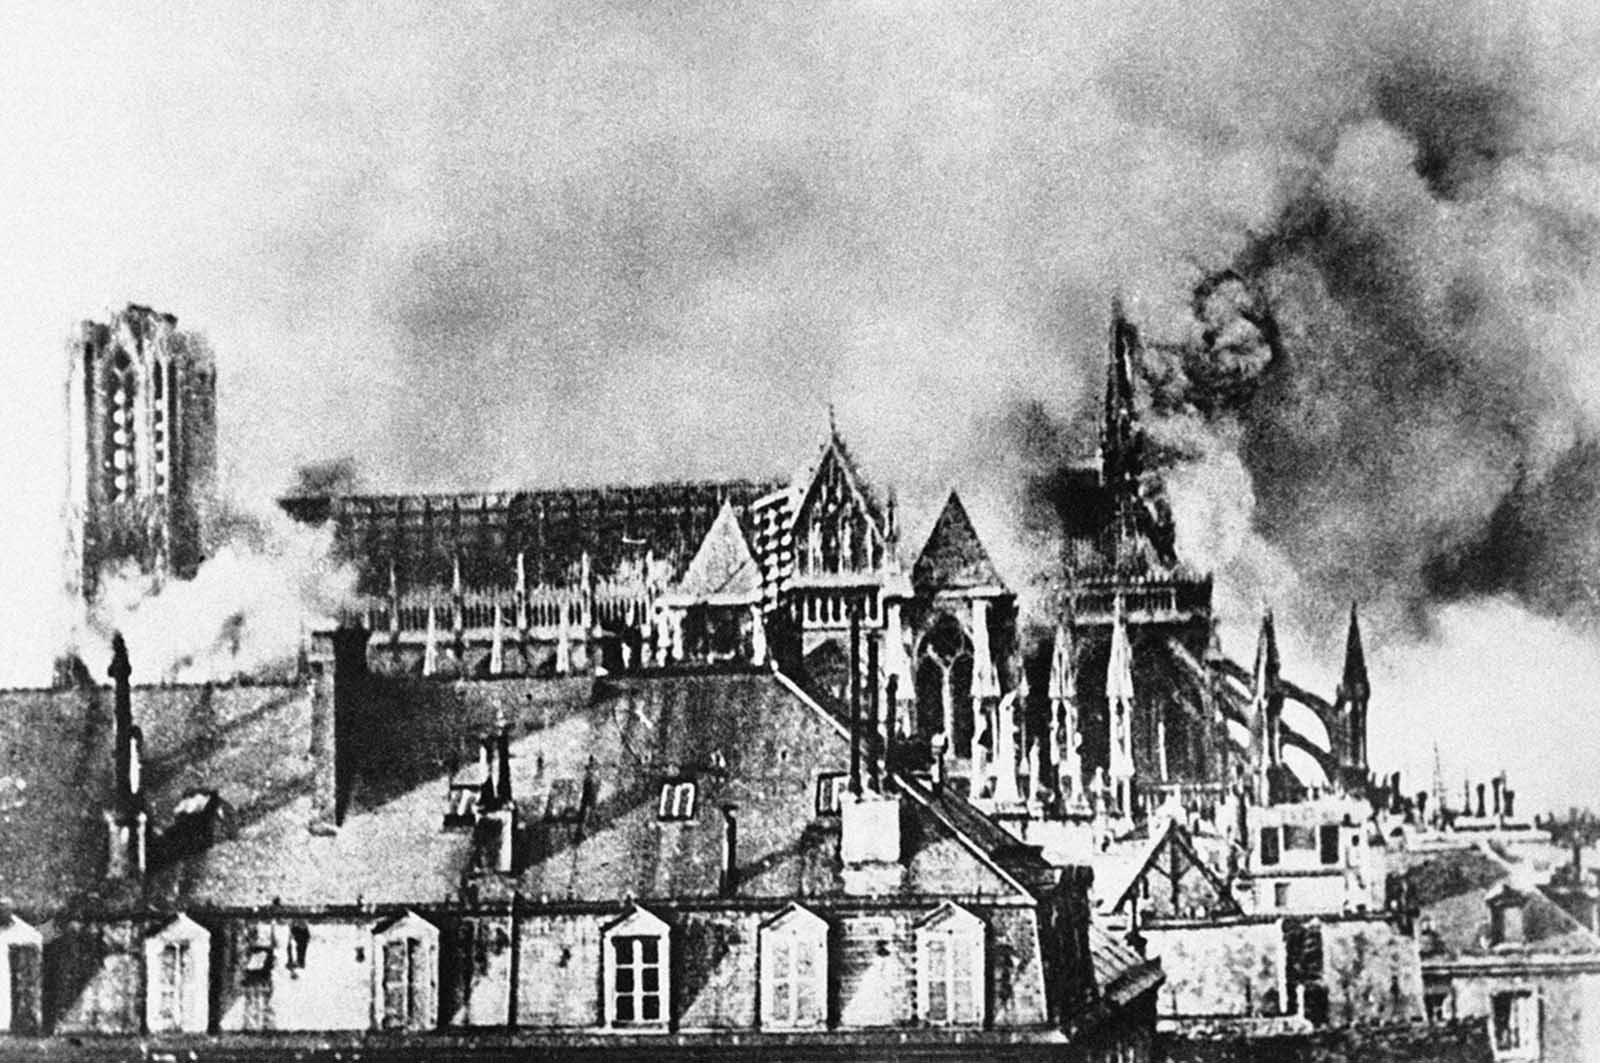 Bombardment of the Cathedral of Reims, France, in September of 1914, as German incendiary bombs fell on the towers and on the apse during the German invasion of northern France.